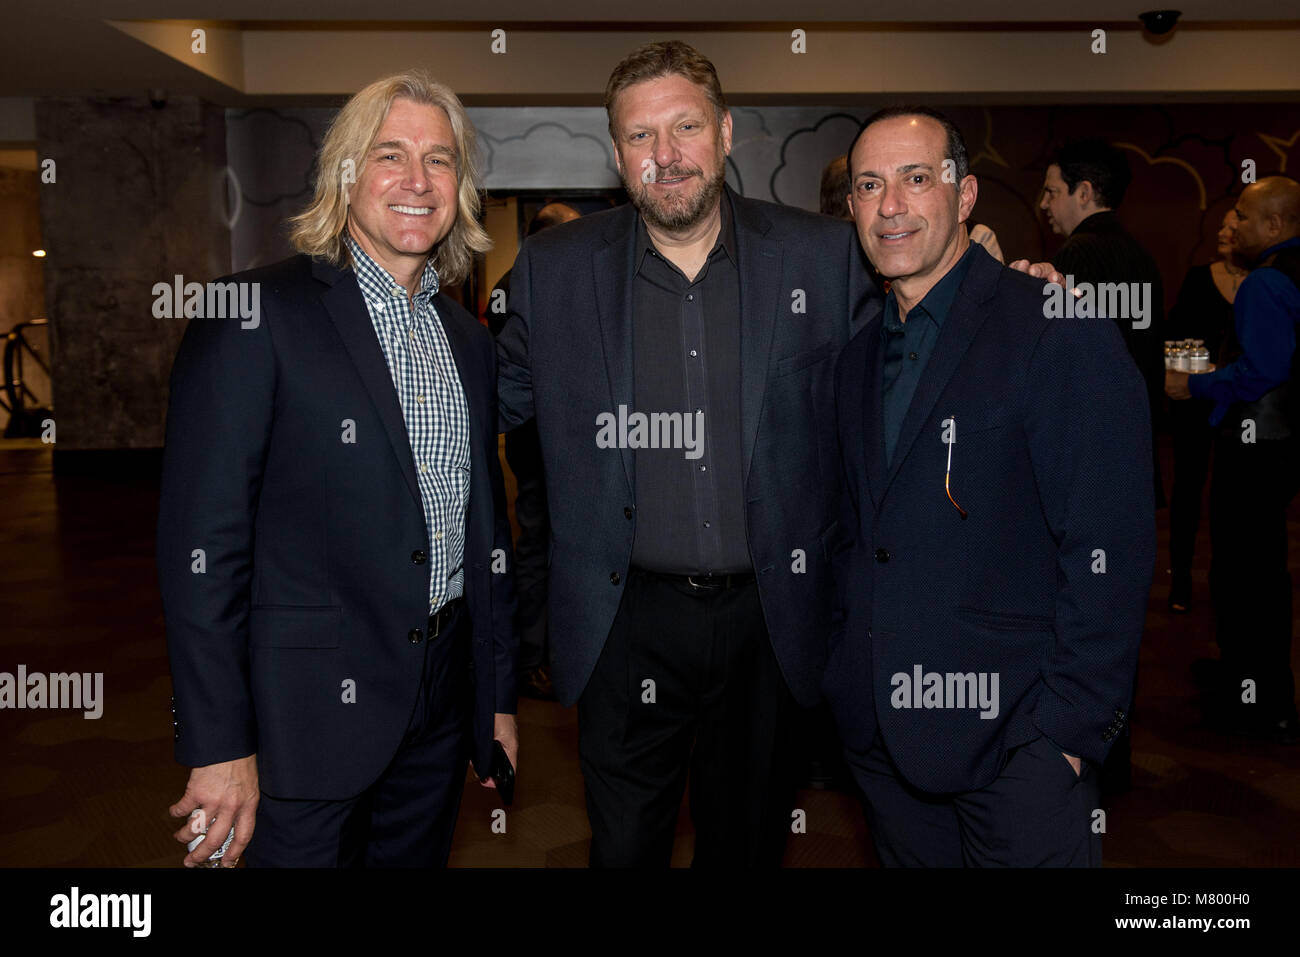 Las Vegas, NV, USA. 13th Mar, 2018. ***HOUSE COVERAGE*** Lindsay Fellows, Dan Byrn, Ken Raasch pictured Lollapalooza - Stock Image